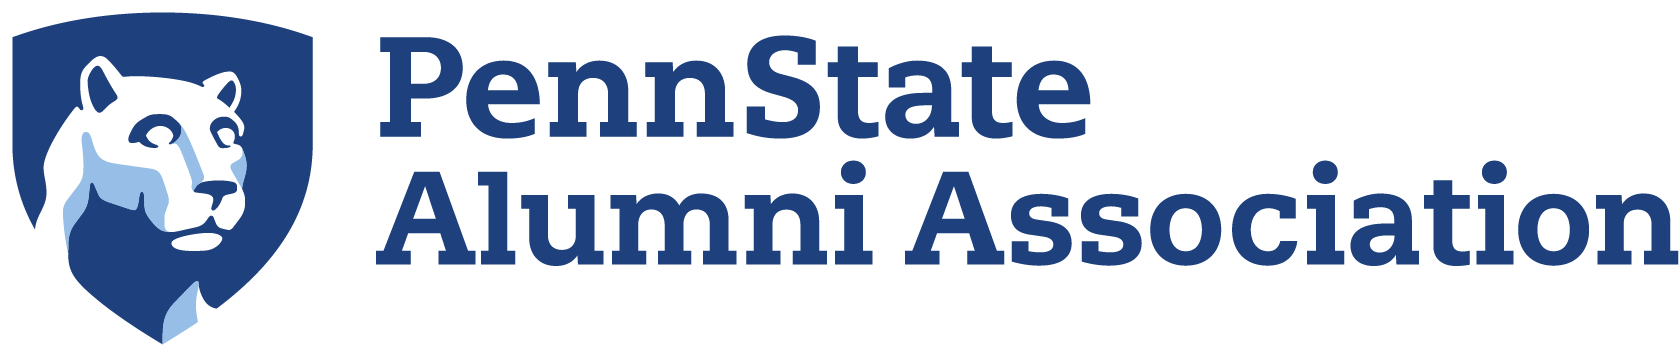 Penn State Alumni Association - Welcome!